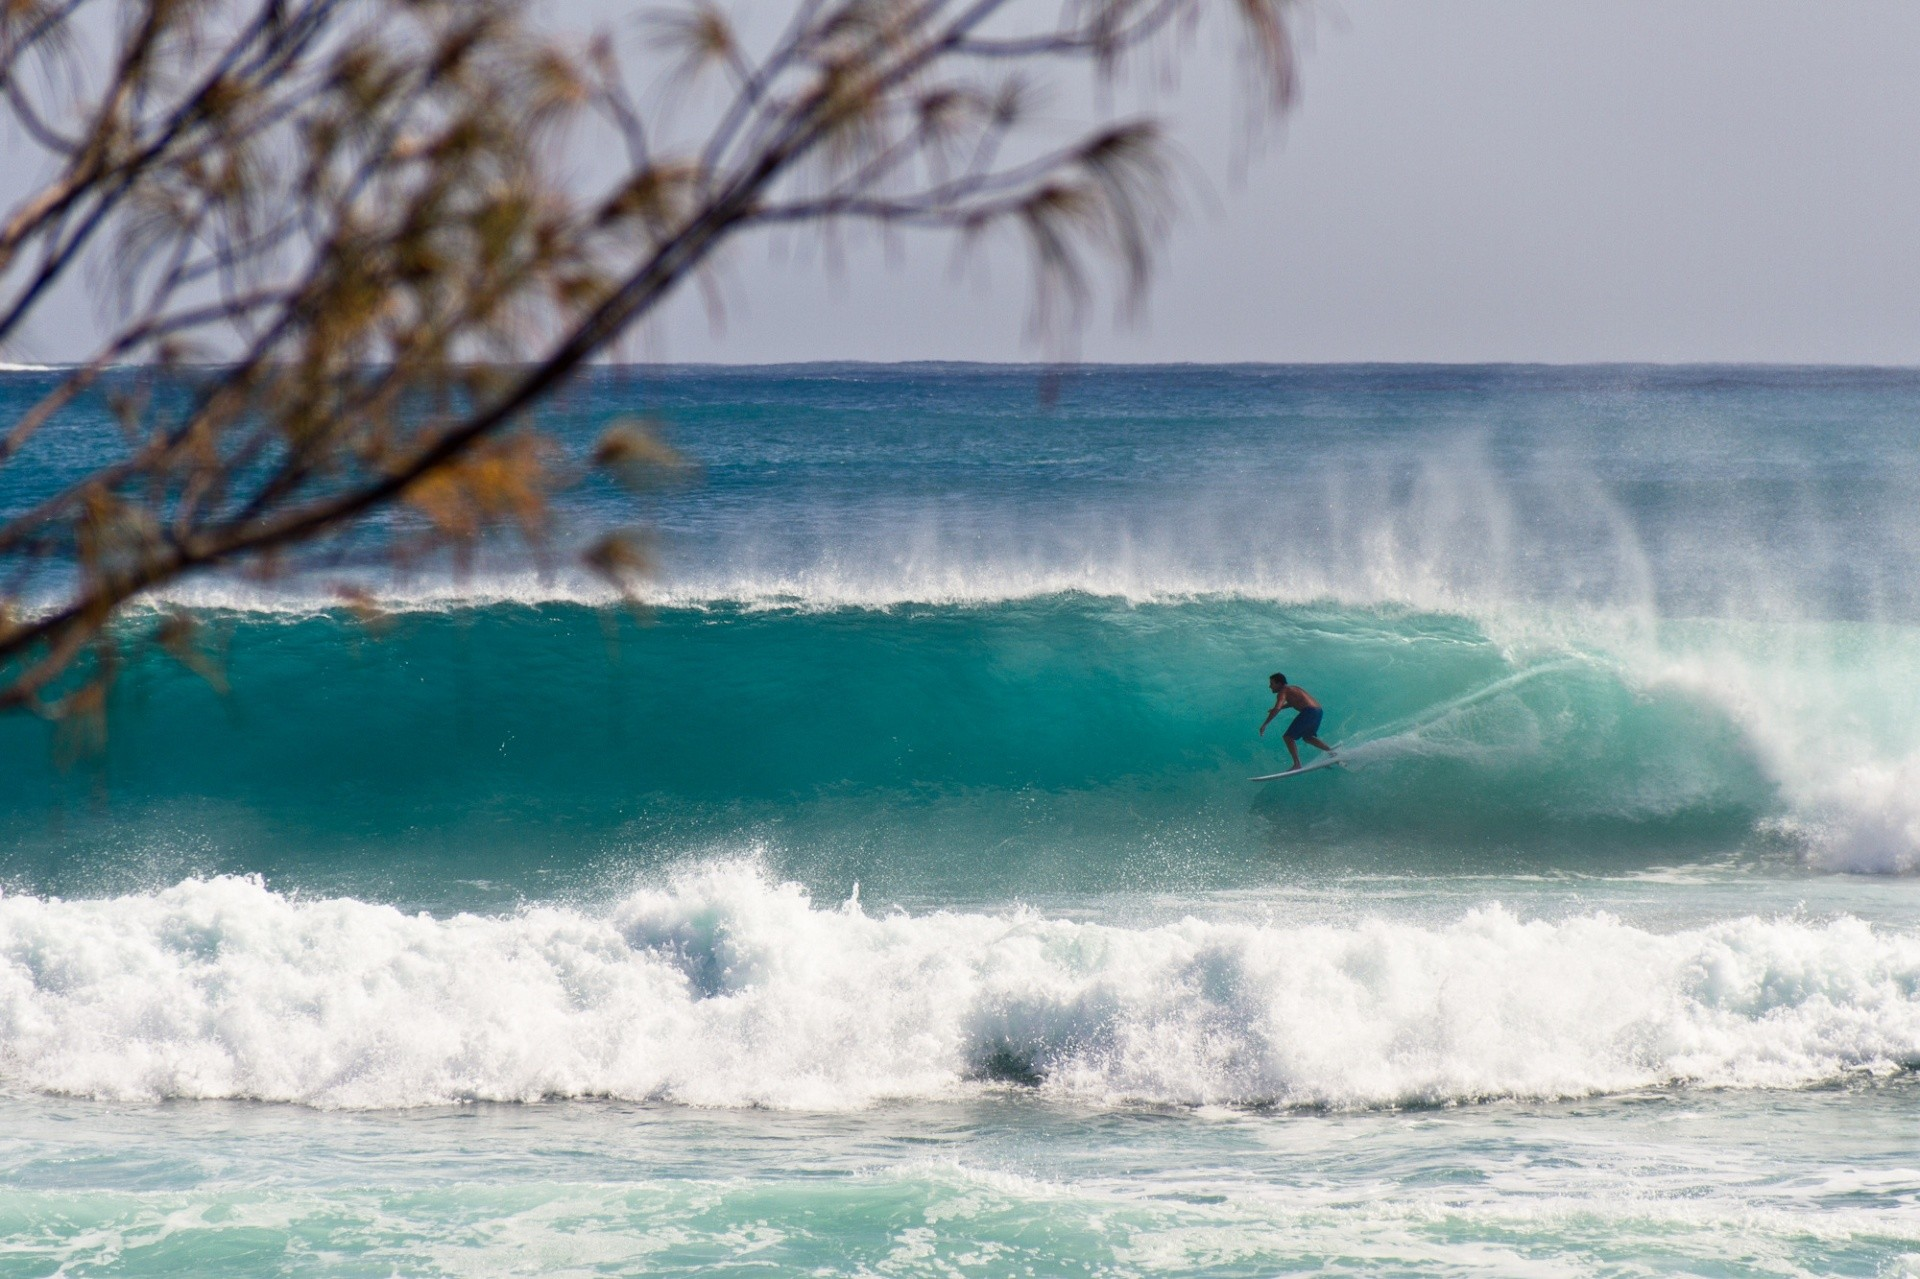 chris immler's photo of Byron Bay